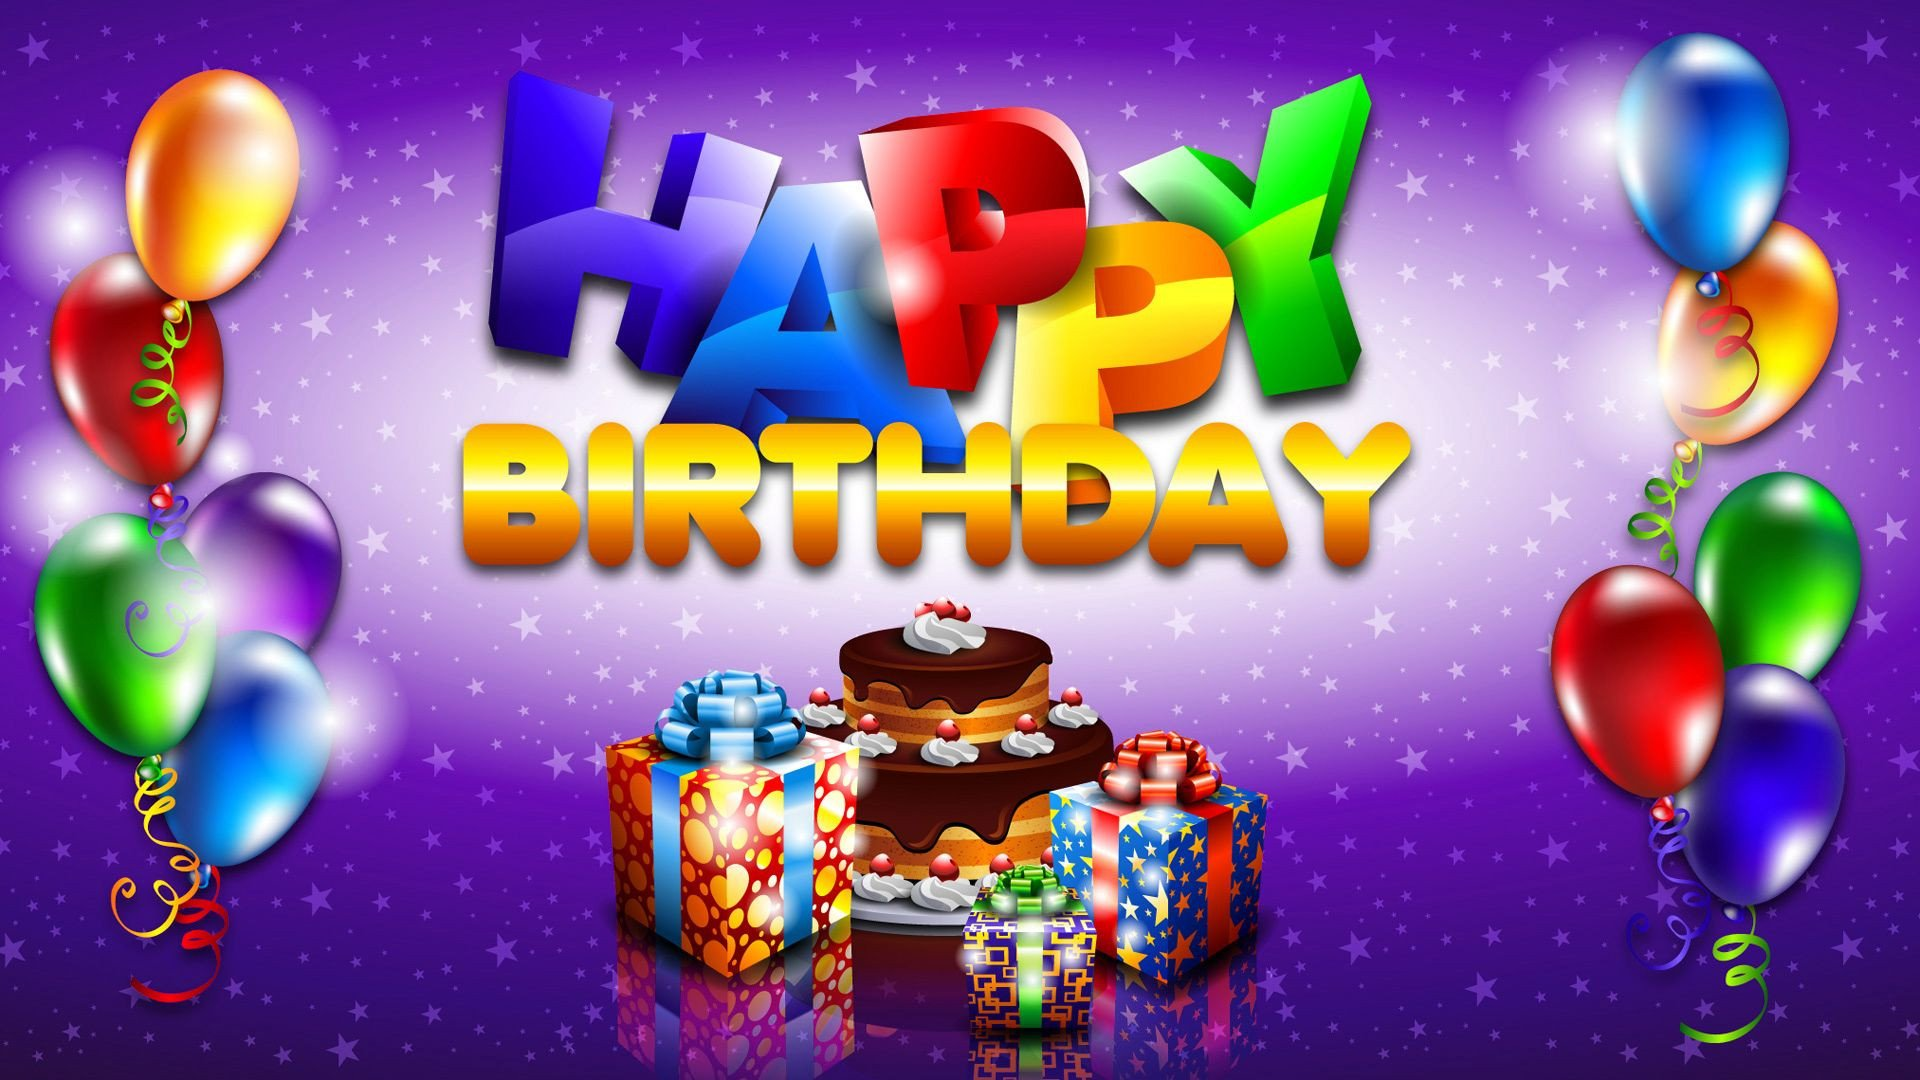 Happy Birthday 3d Images Happy Birthday Hd 3d Google Search